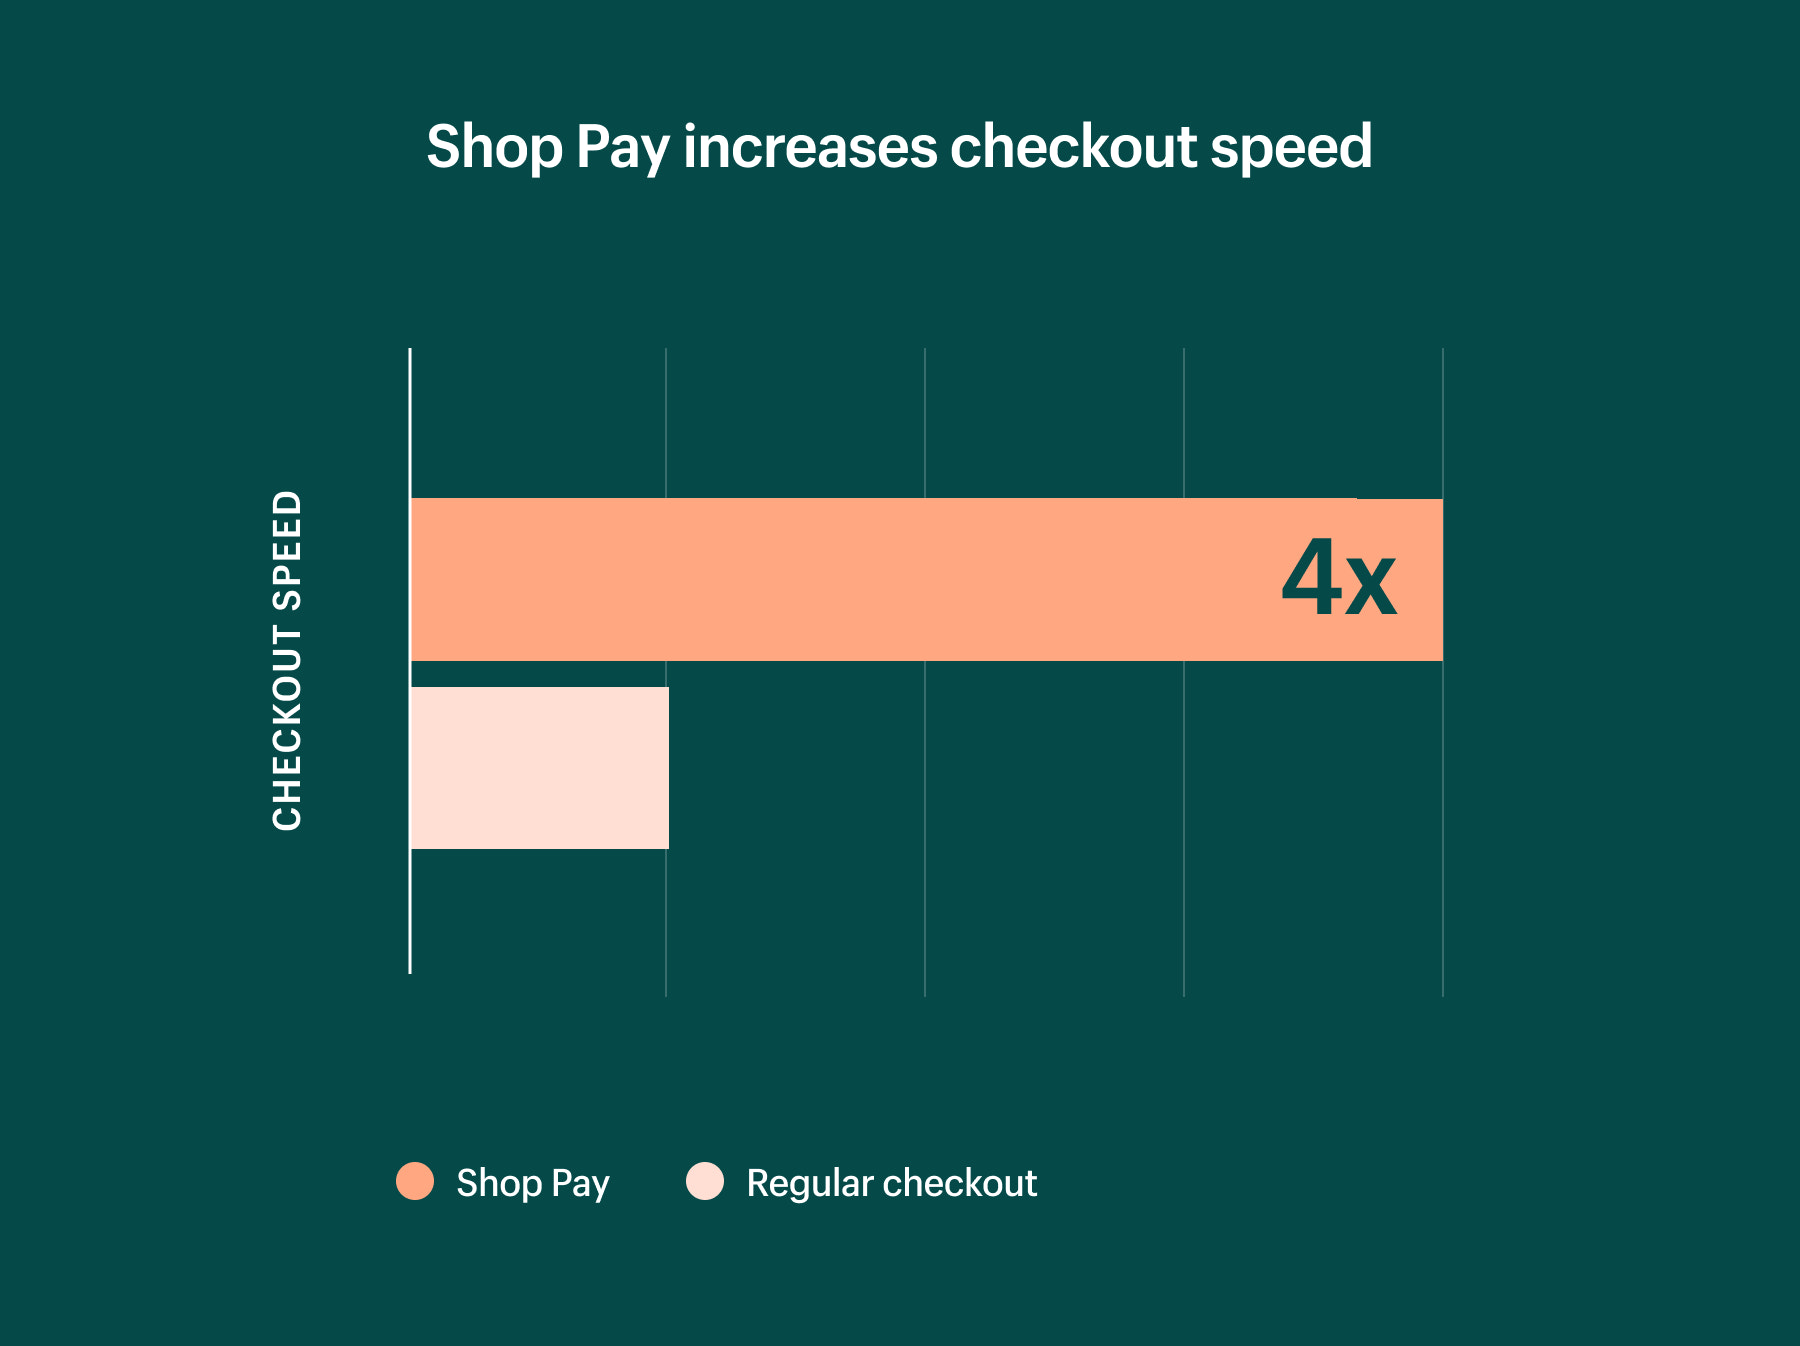 shop pay increases checkout speed by 4x